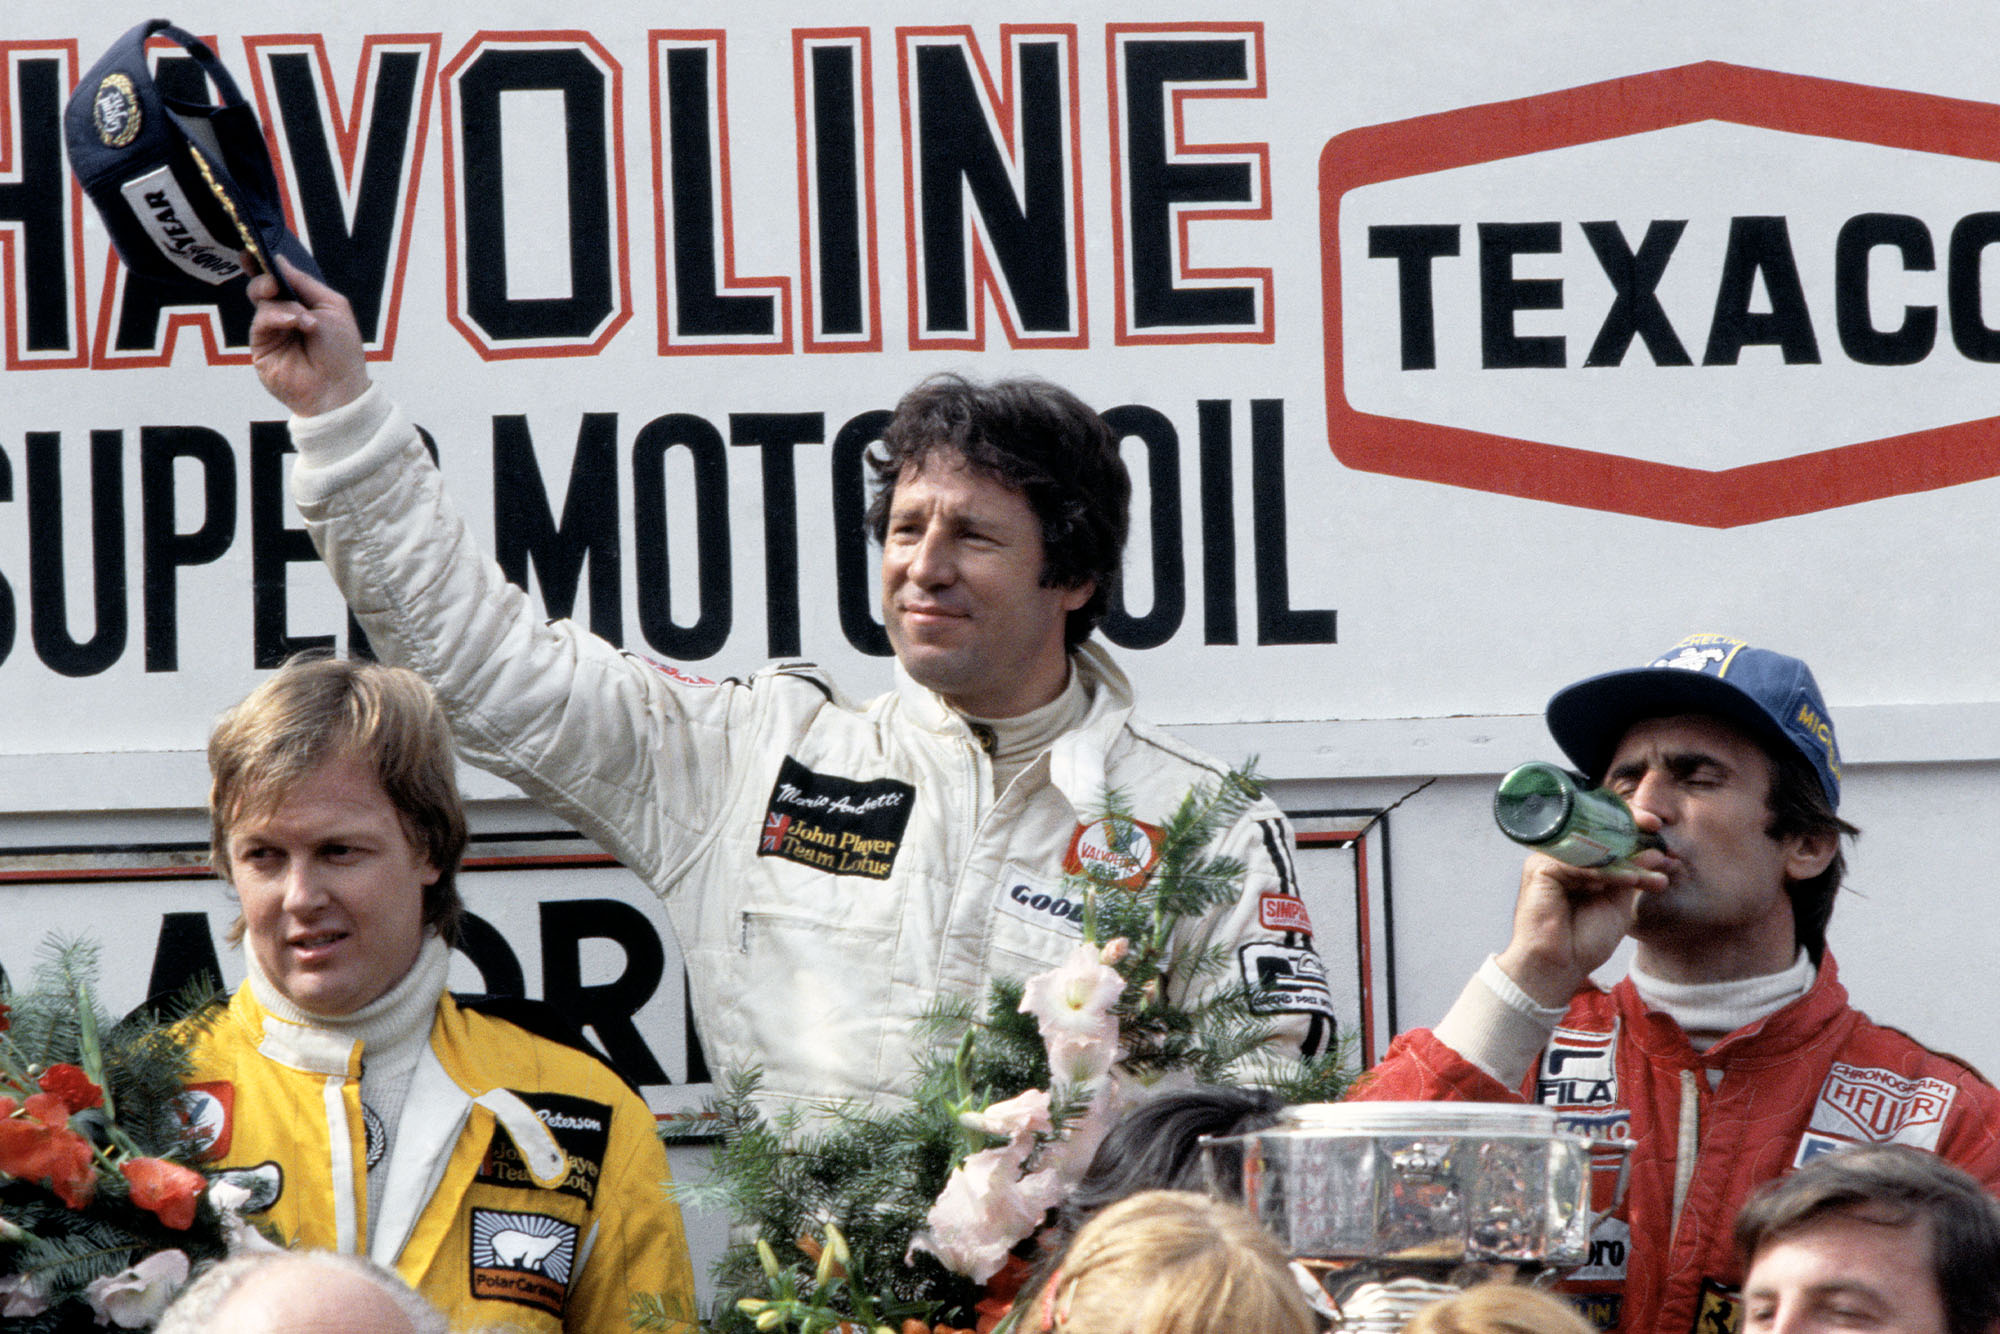 Mario Andretti (Lotus) acknowledges the crowd after winning the 1978 Belgian Grand Prix, Zolder.